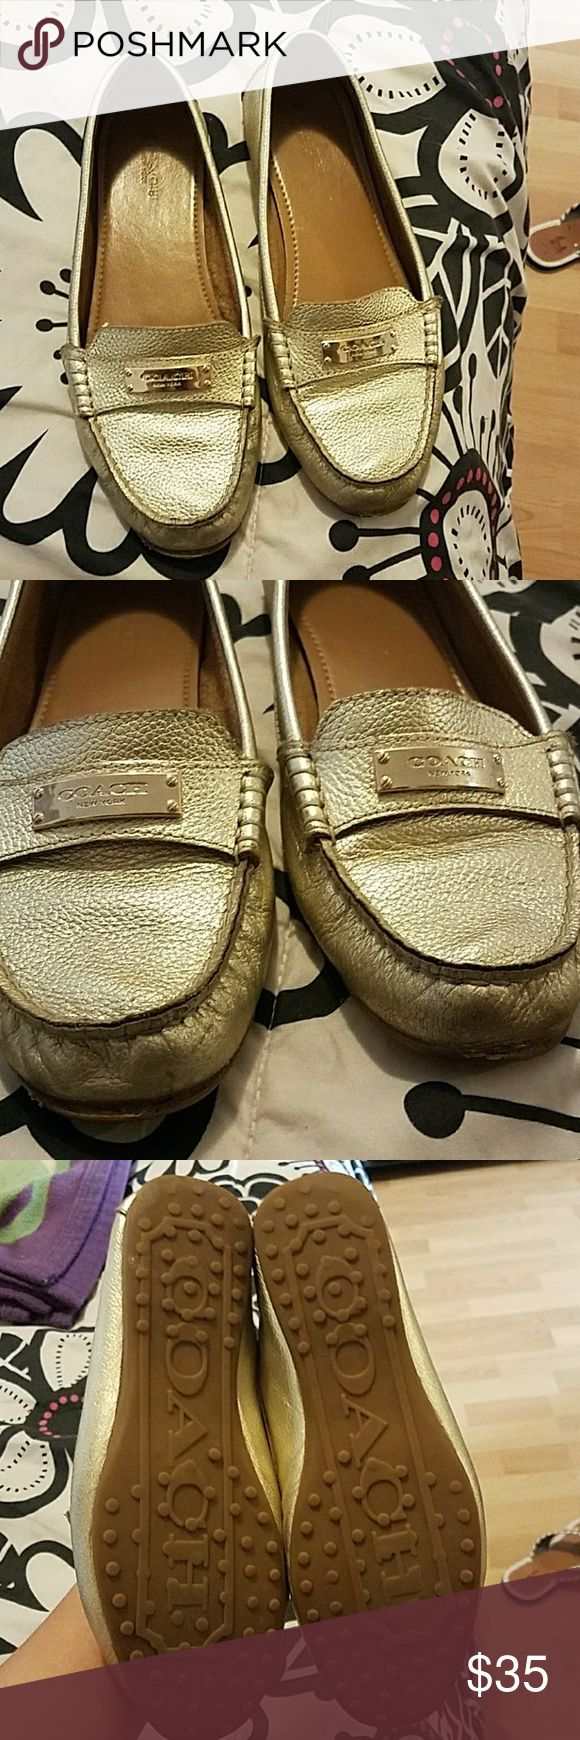 Coach flats Gold coach flats. Very comfortable Coach Shoes Flats & Loafers